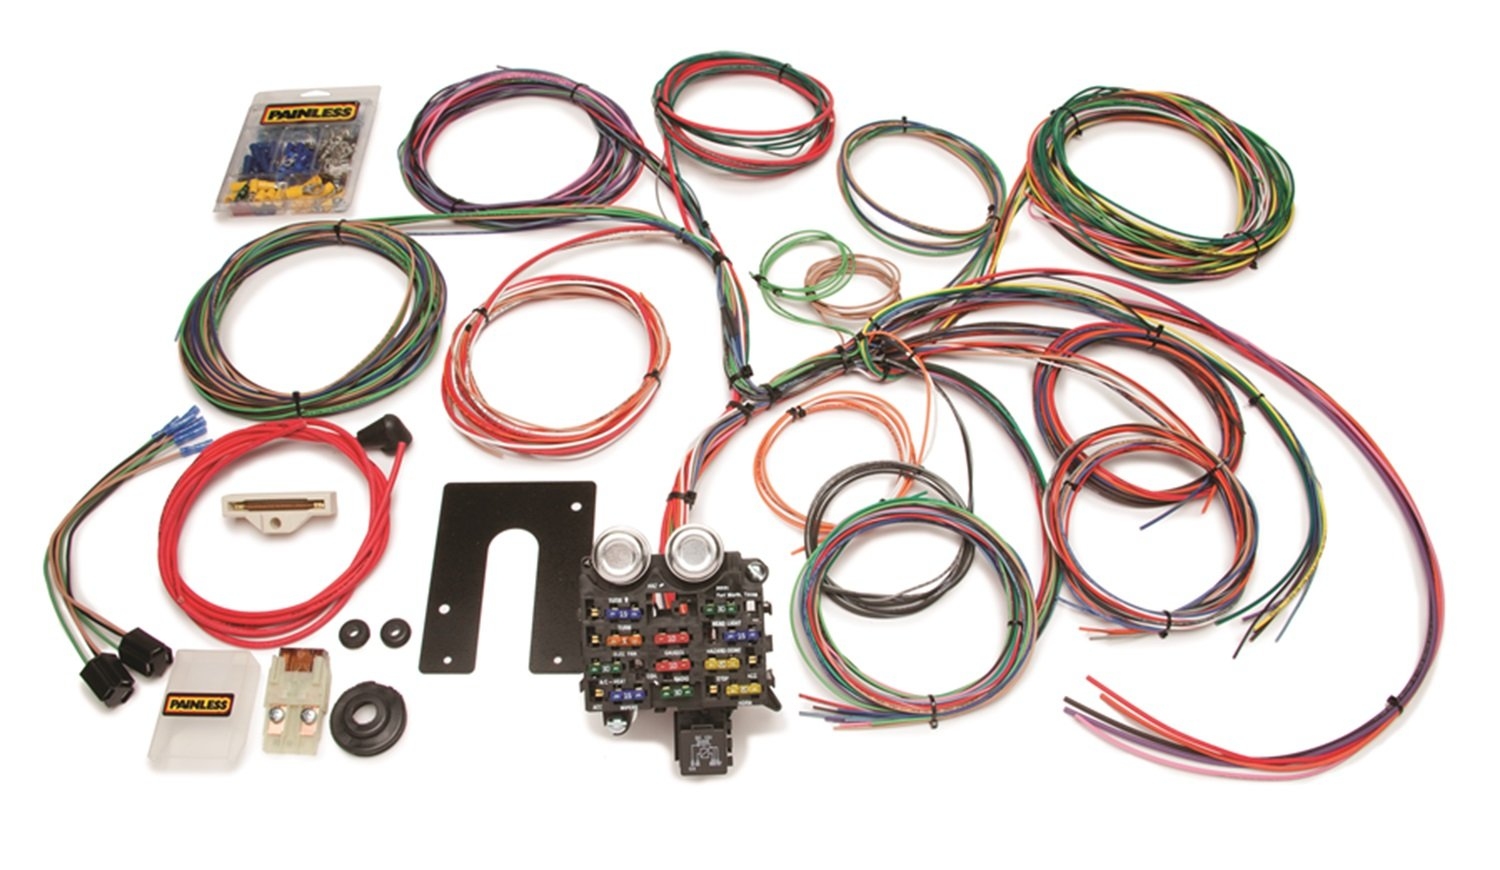 71y4s8BuPyL._SL1500_ amazon com painless wire 10105 wiring harness with firewall Wiring Harness Diagram at gsmx.co